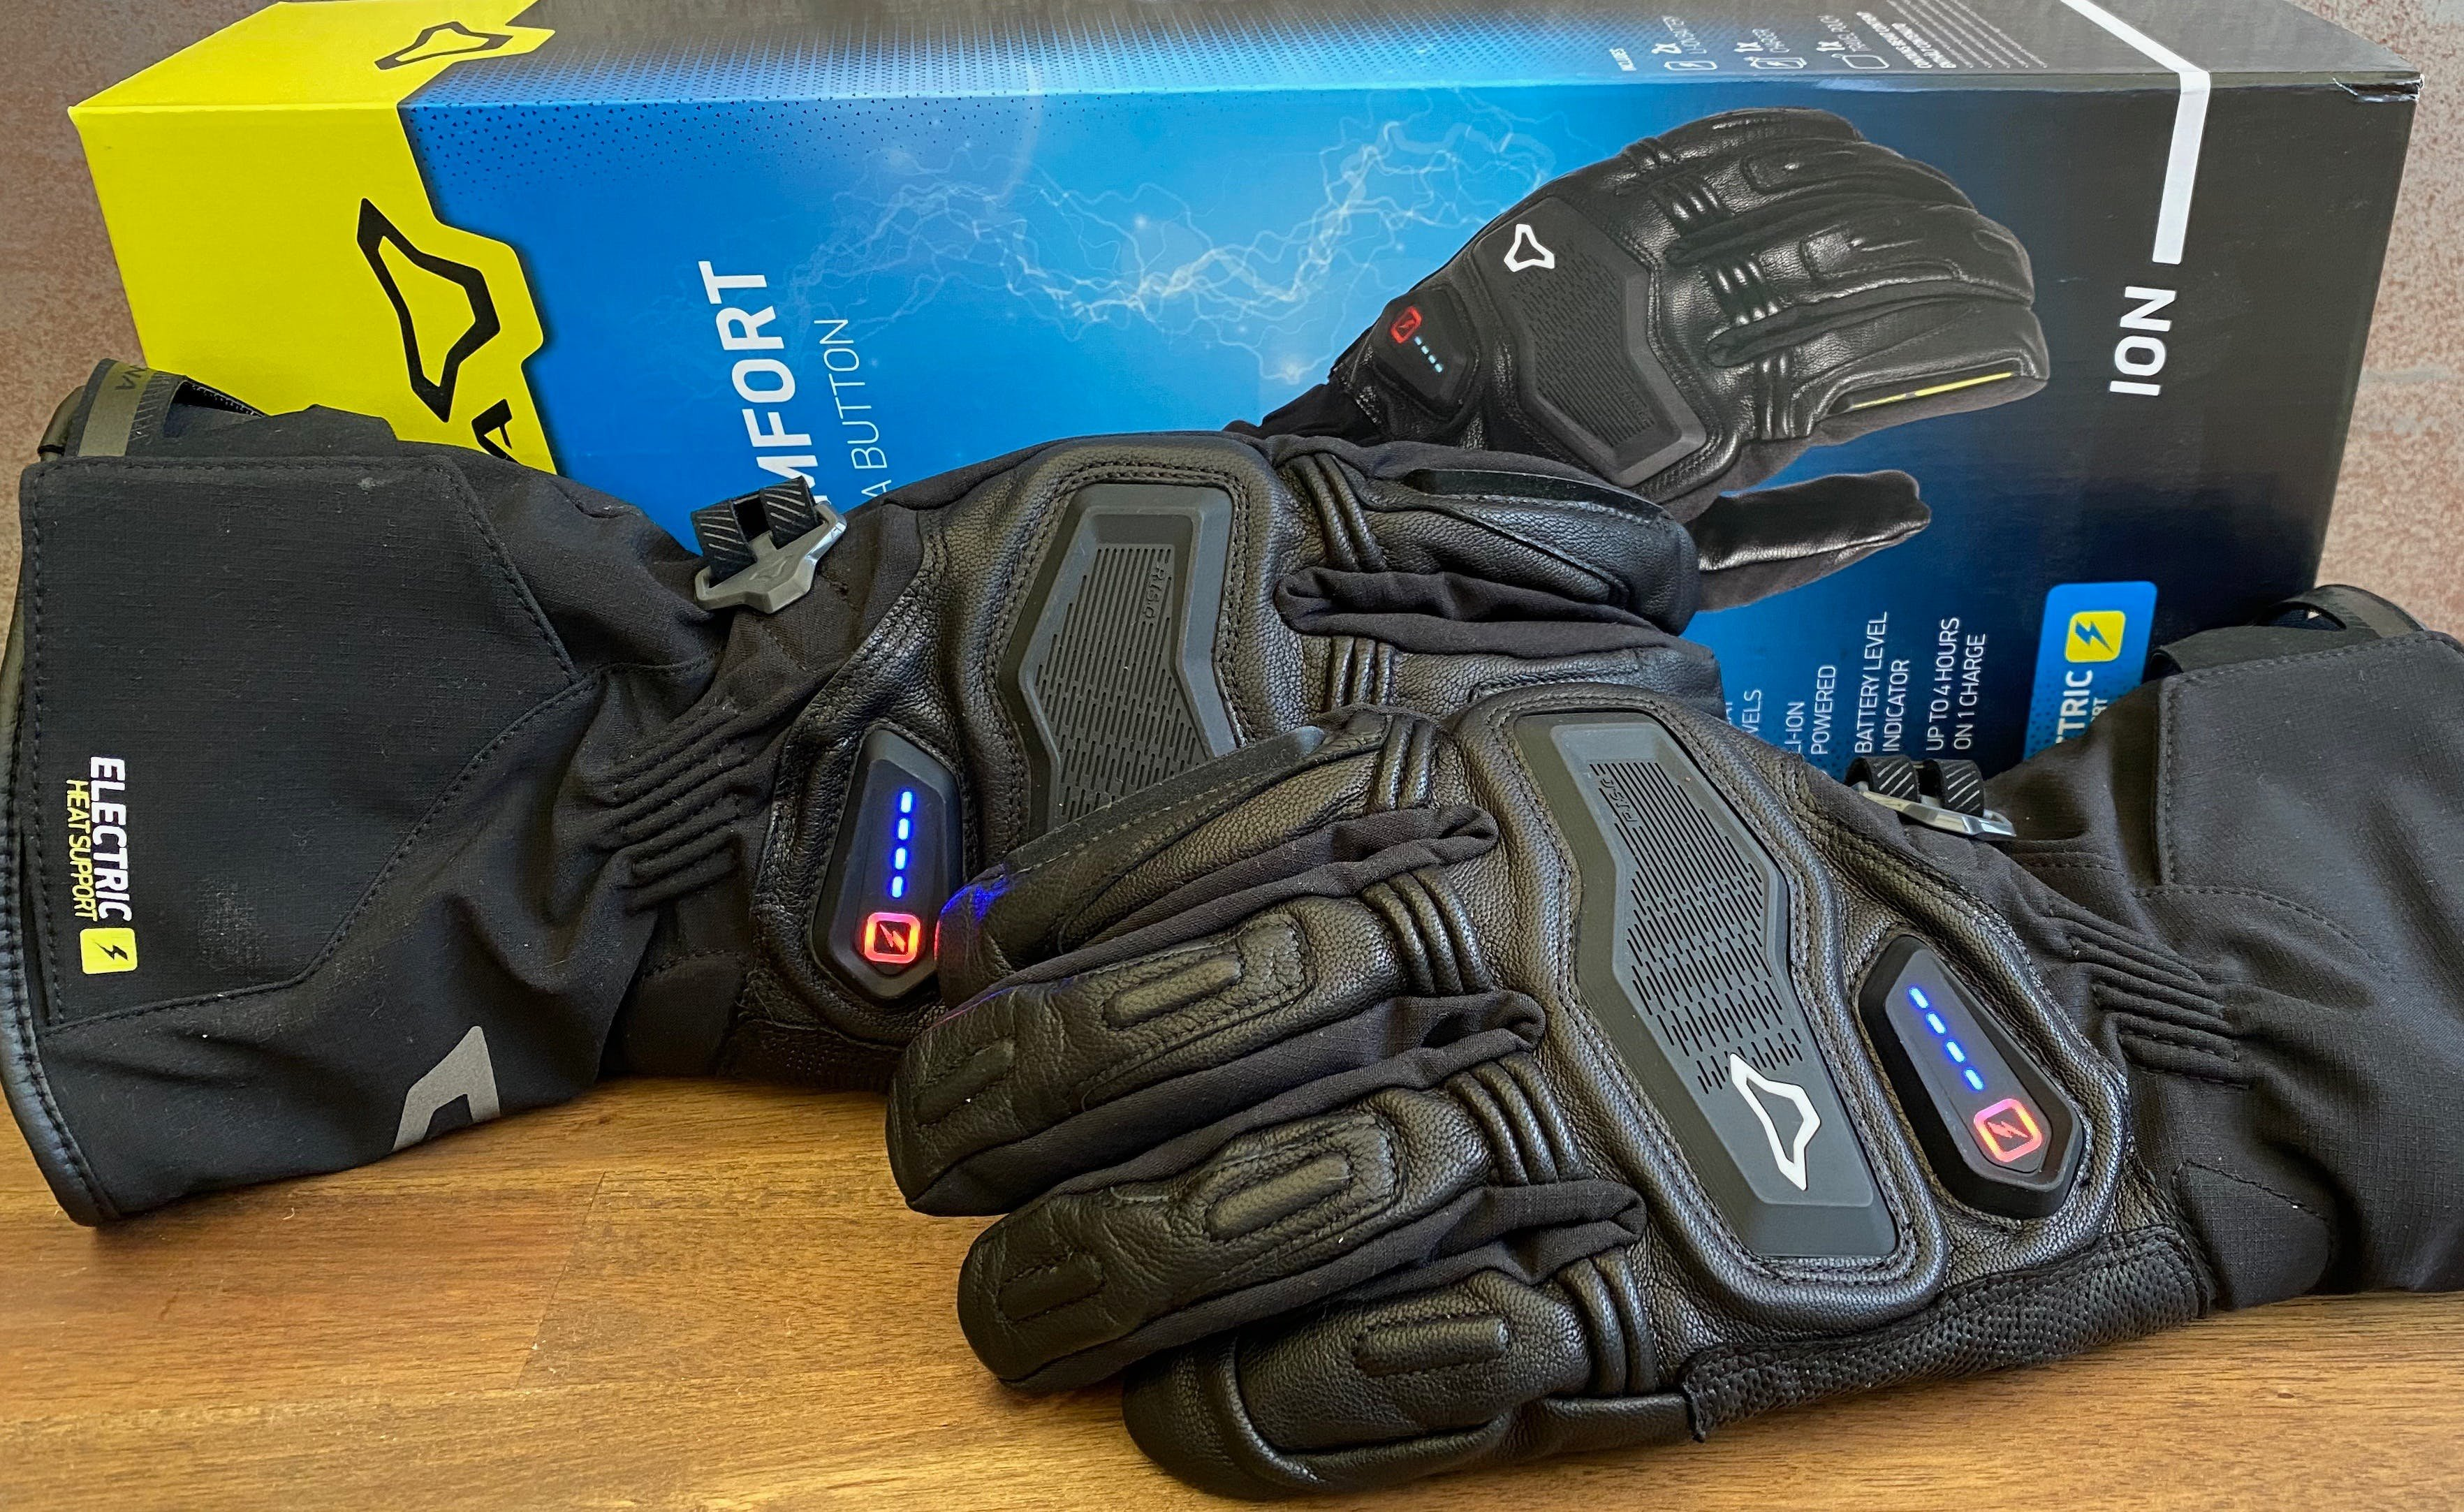 A pair of Macna Ion gloves in front of their blue and yellow box